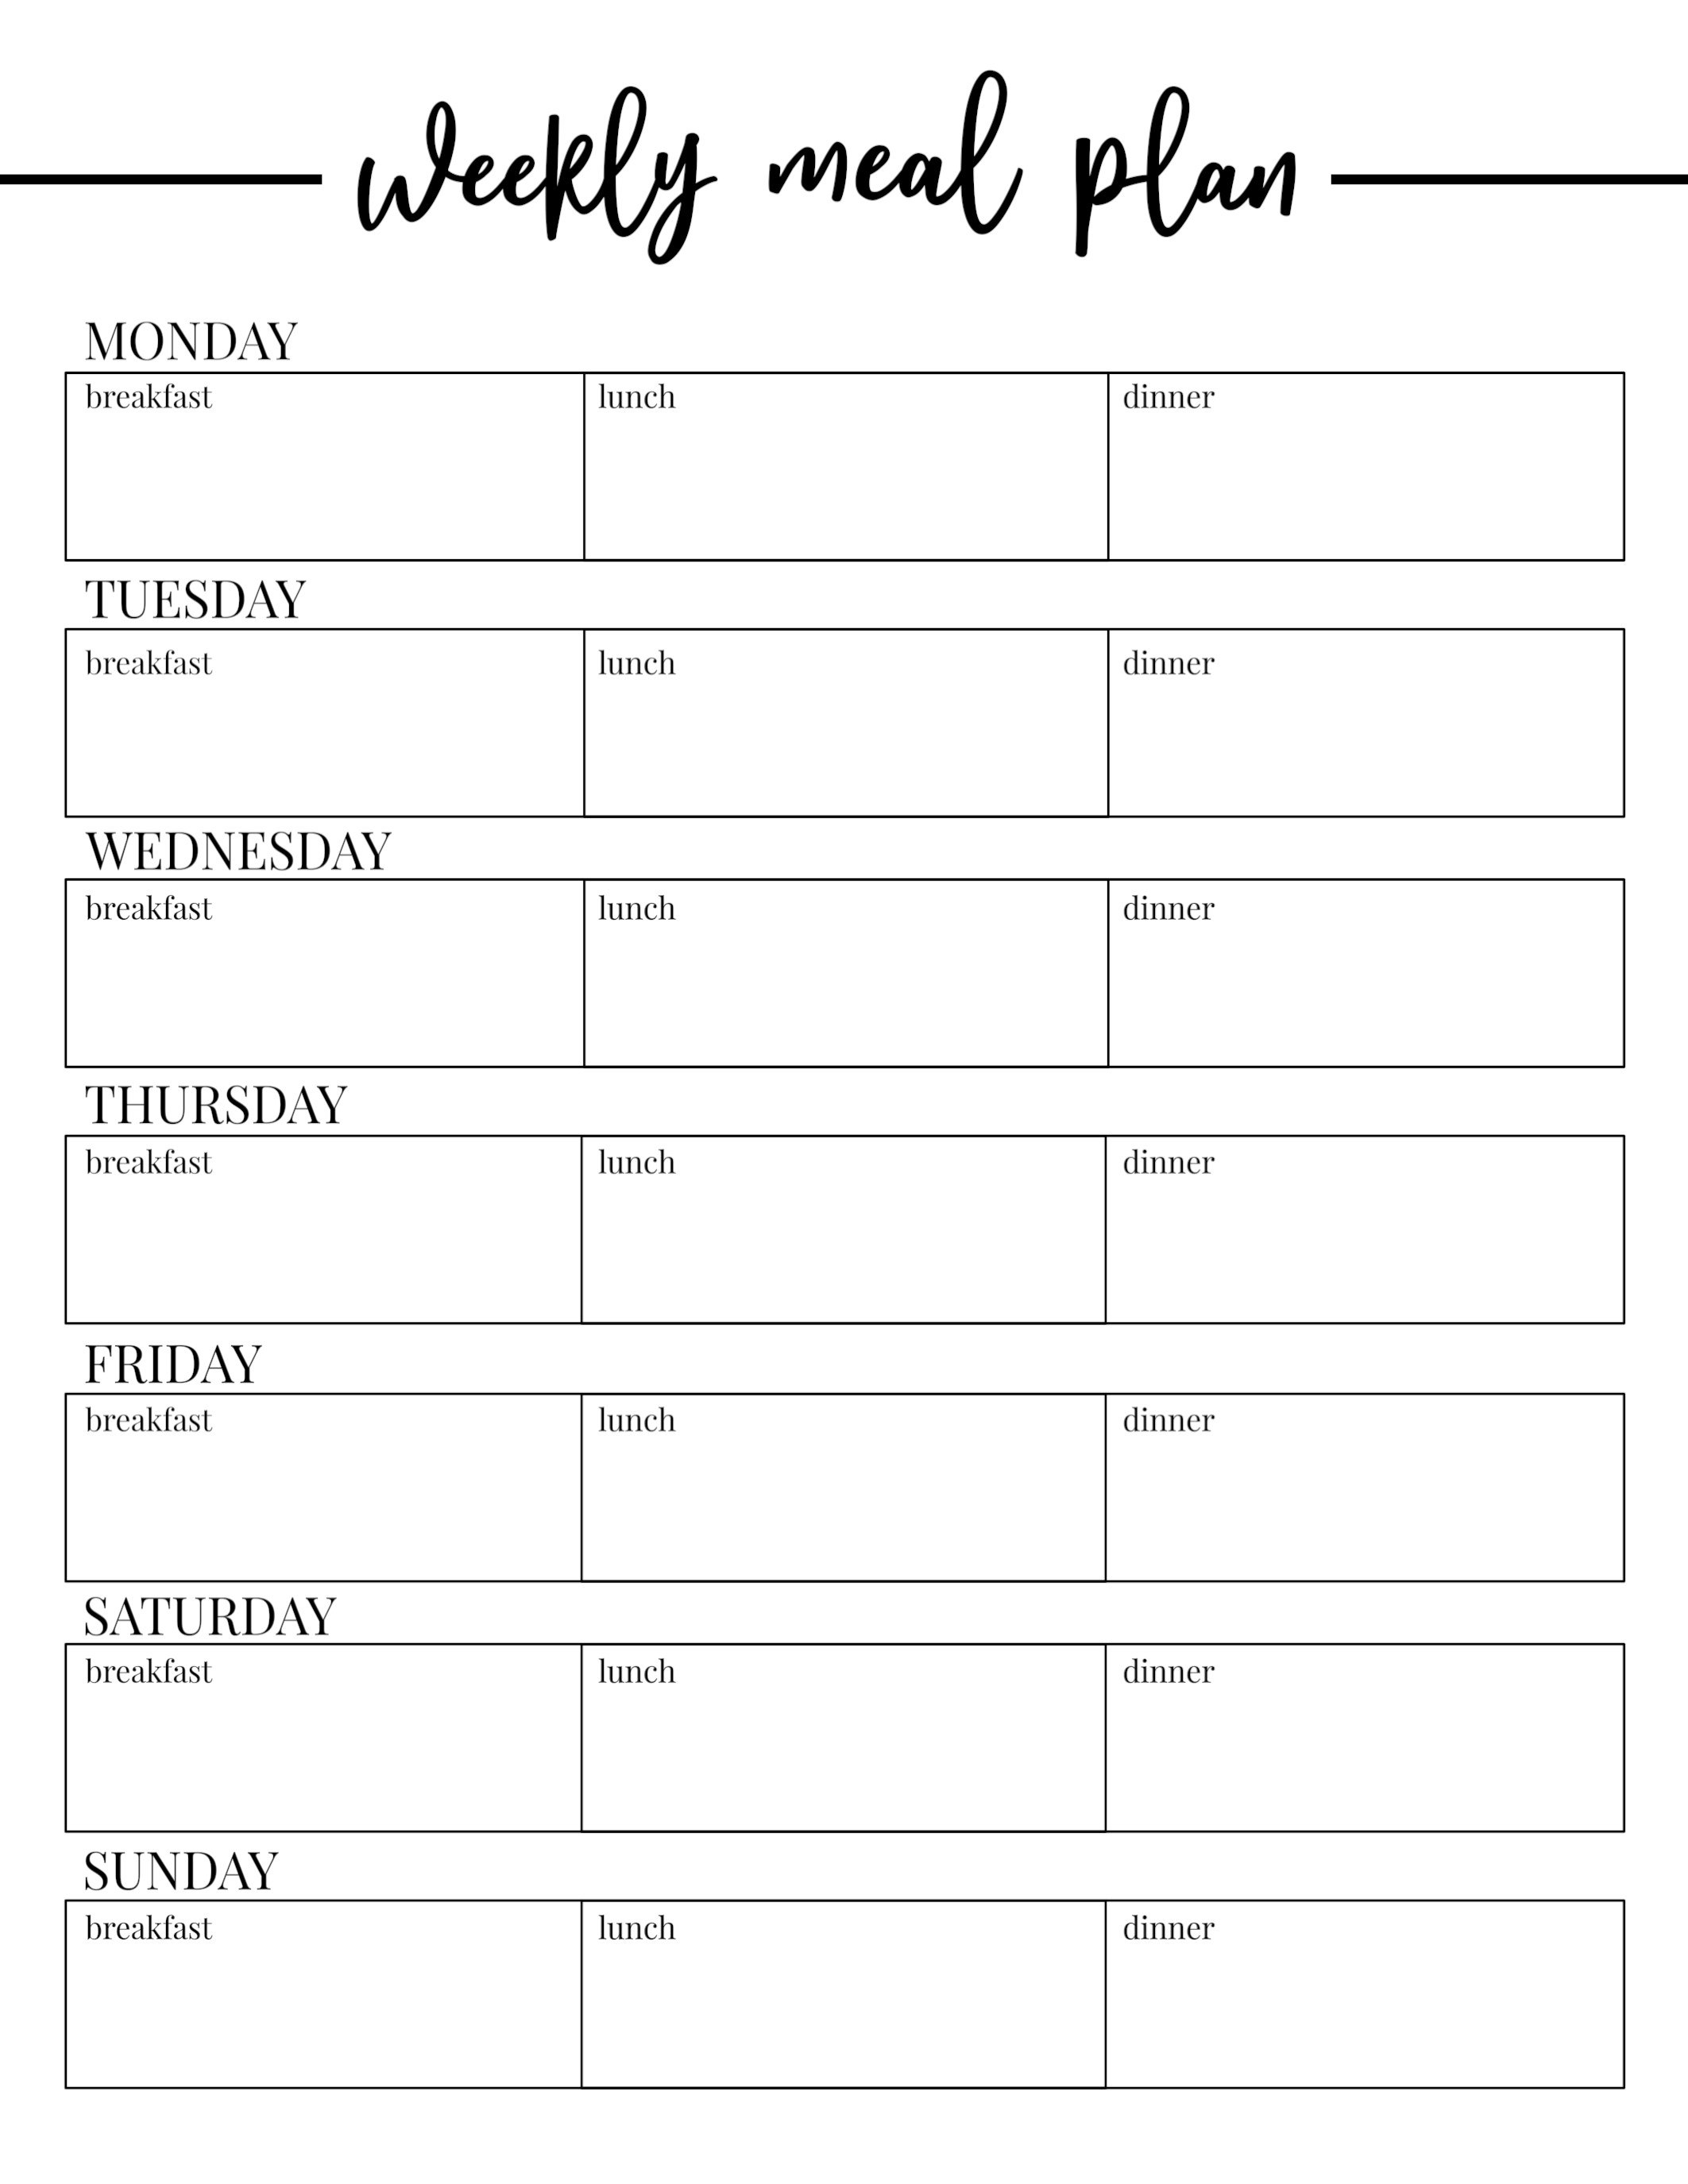 Weekly Meal Plans Blank Amazing Plan Template Templates Word With Regard To Weekly Menu Planner Template Word